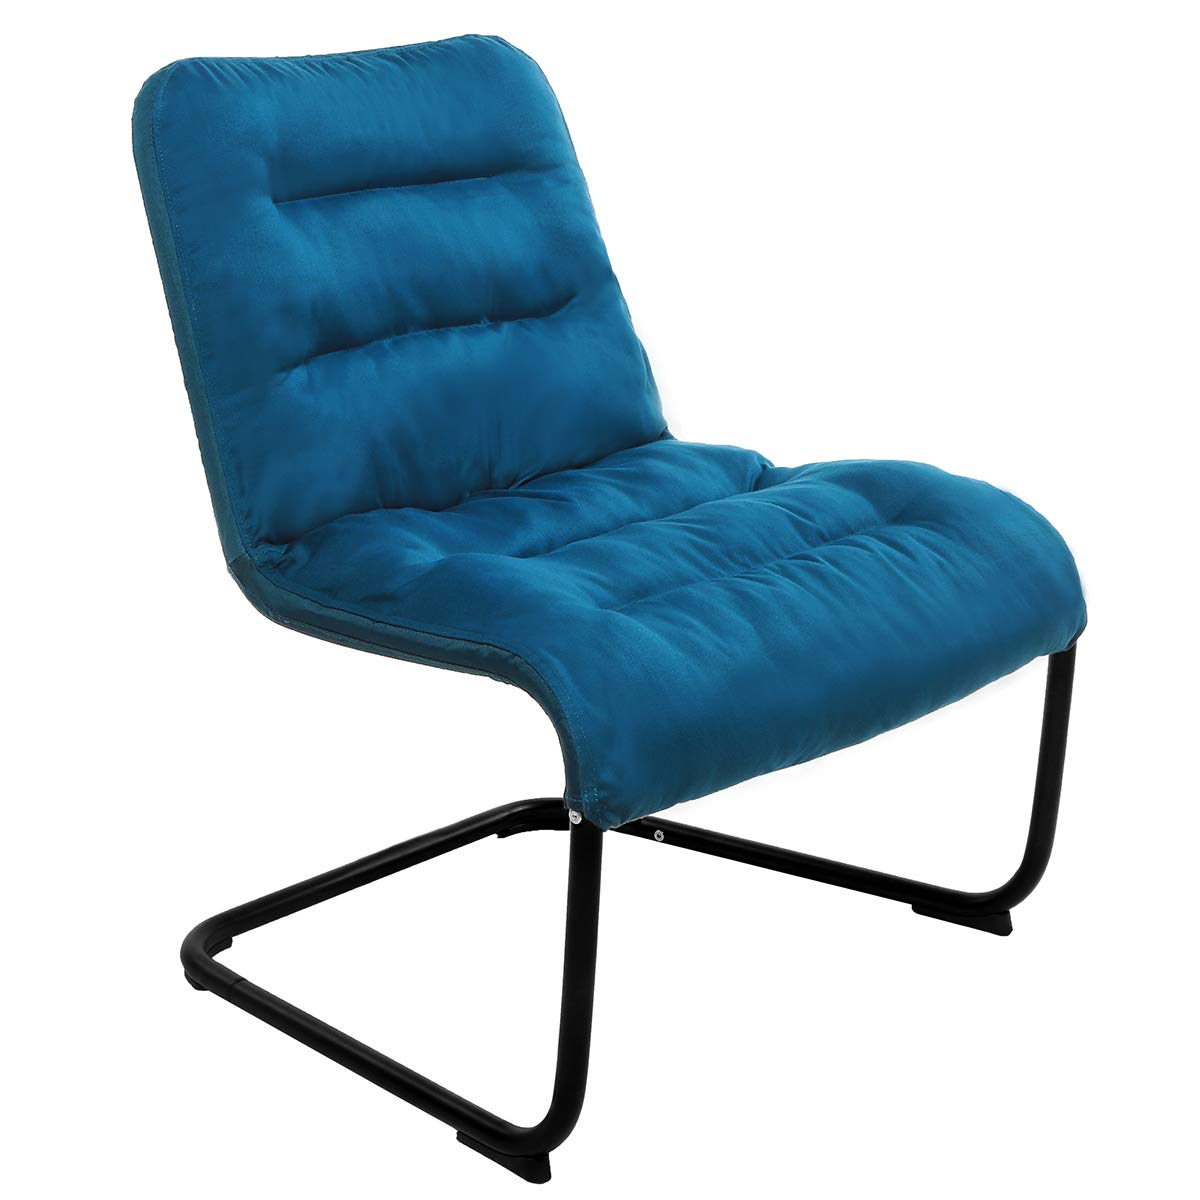 zenree comfortable bedroom chairs folding reading chair. Black Bedroom Furniture Sets. Home Design Ideas